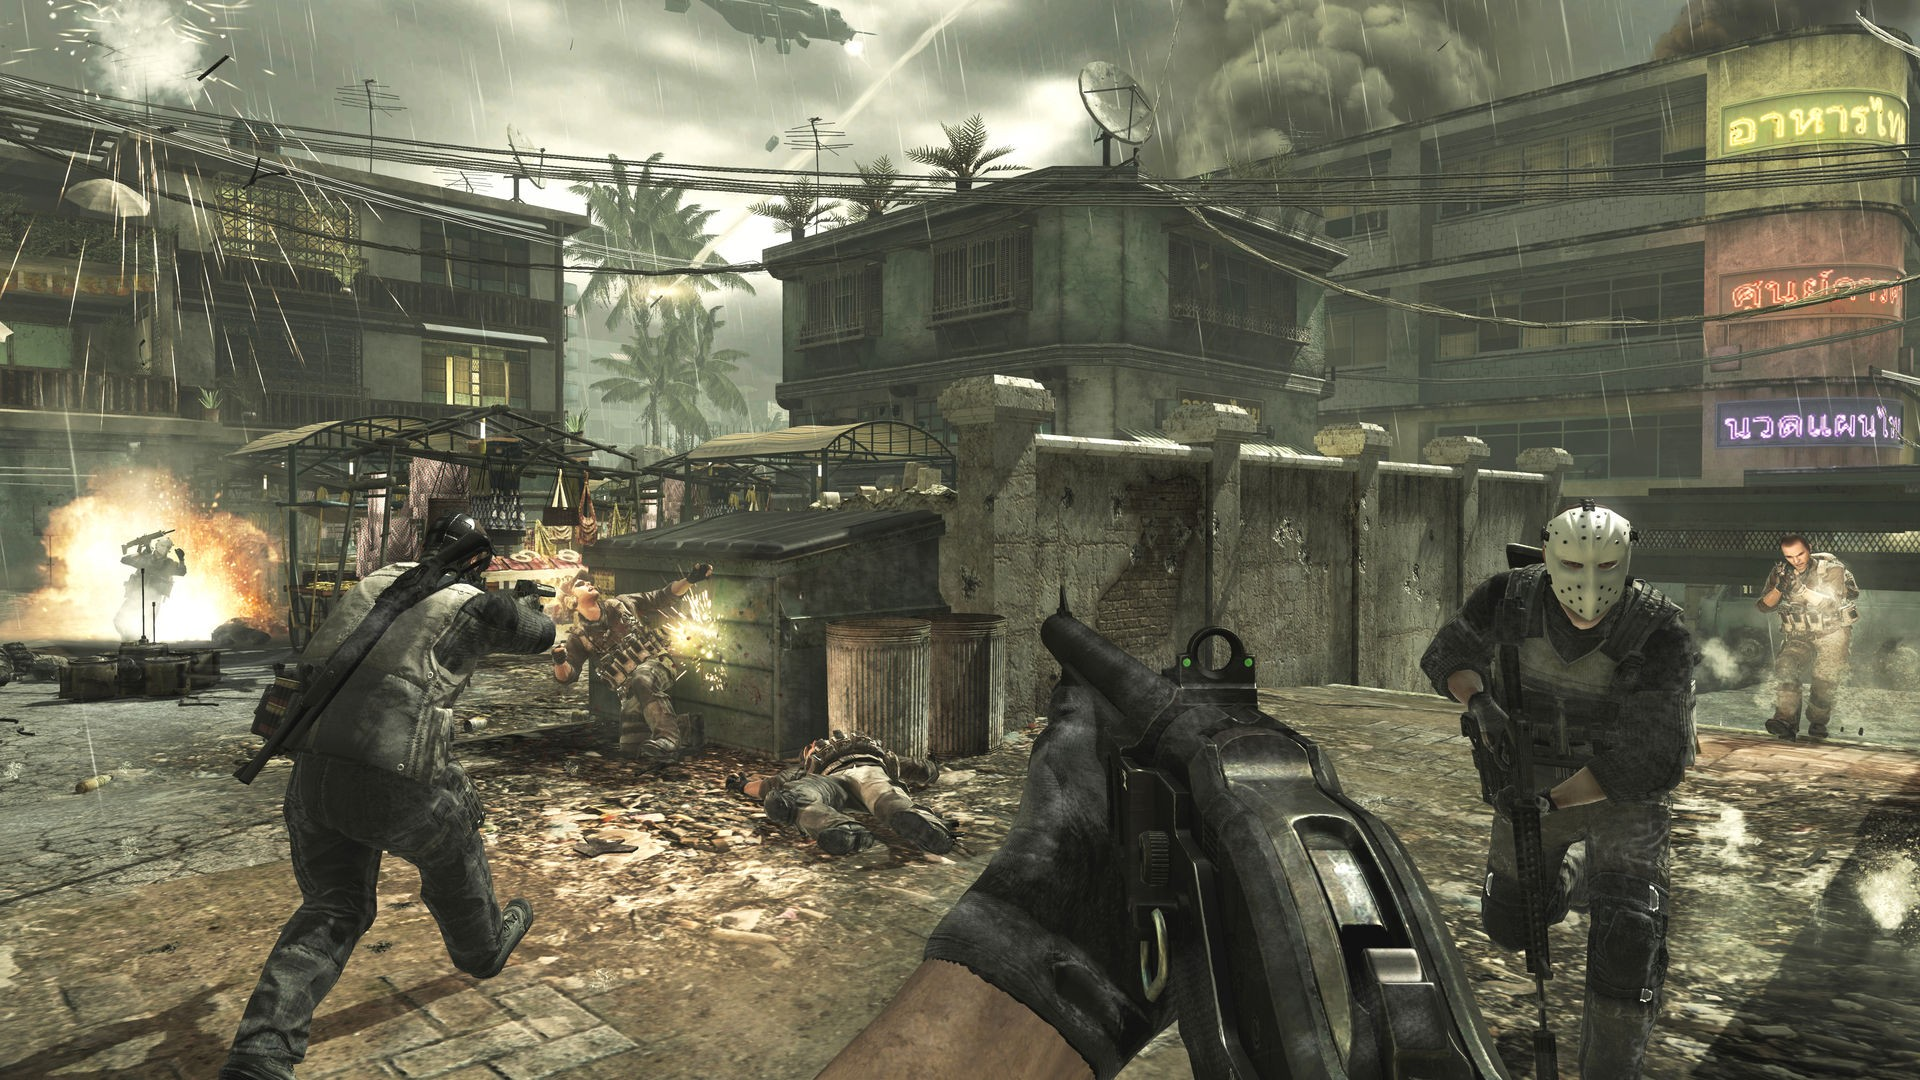 Video game call of duty